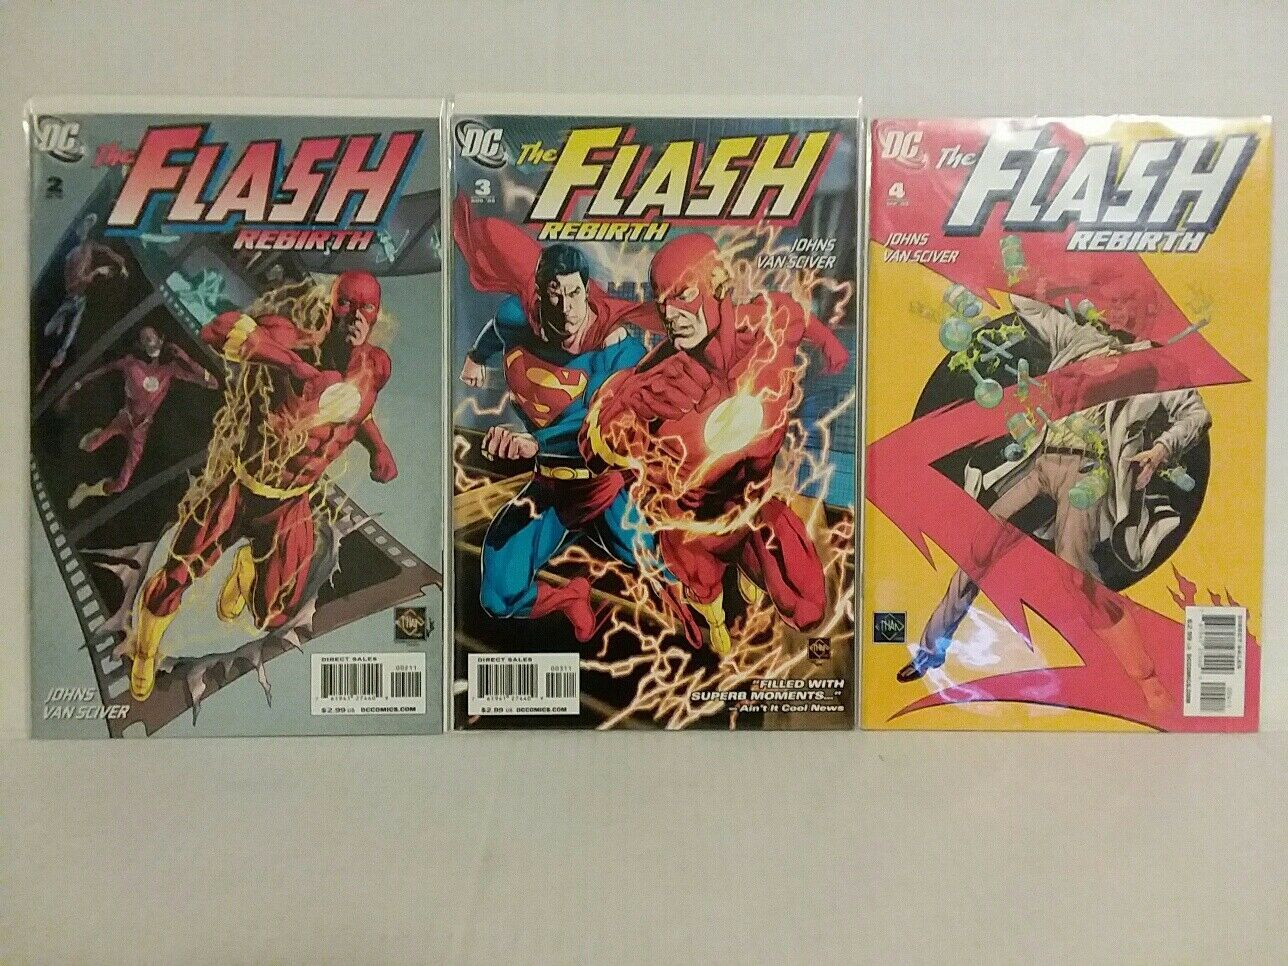 THE FLASH: REBIRTH #2, #3 AND #4 JOHNS AND VAN SCIVER- FREE SHIPPING